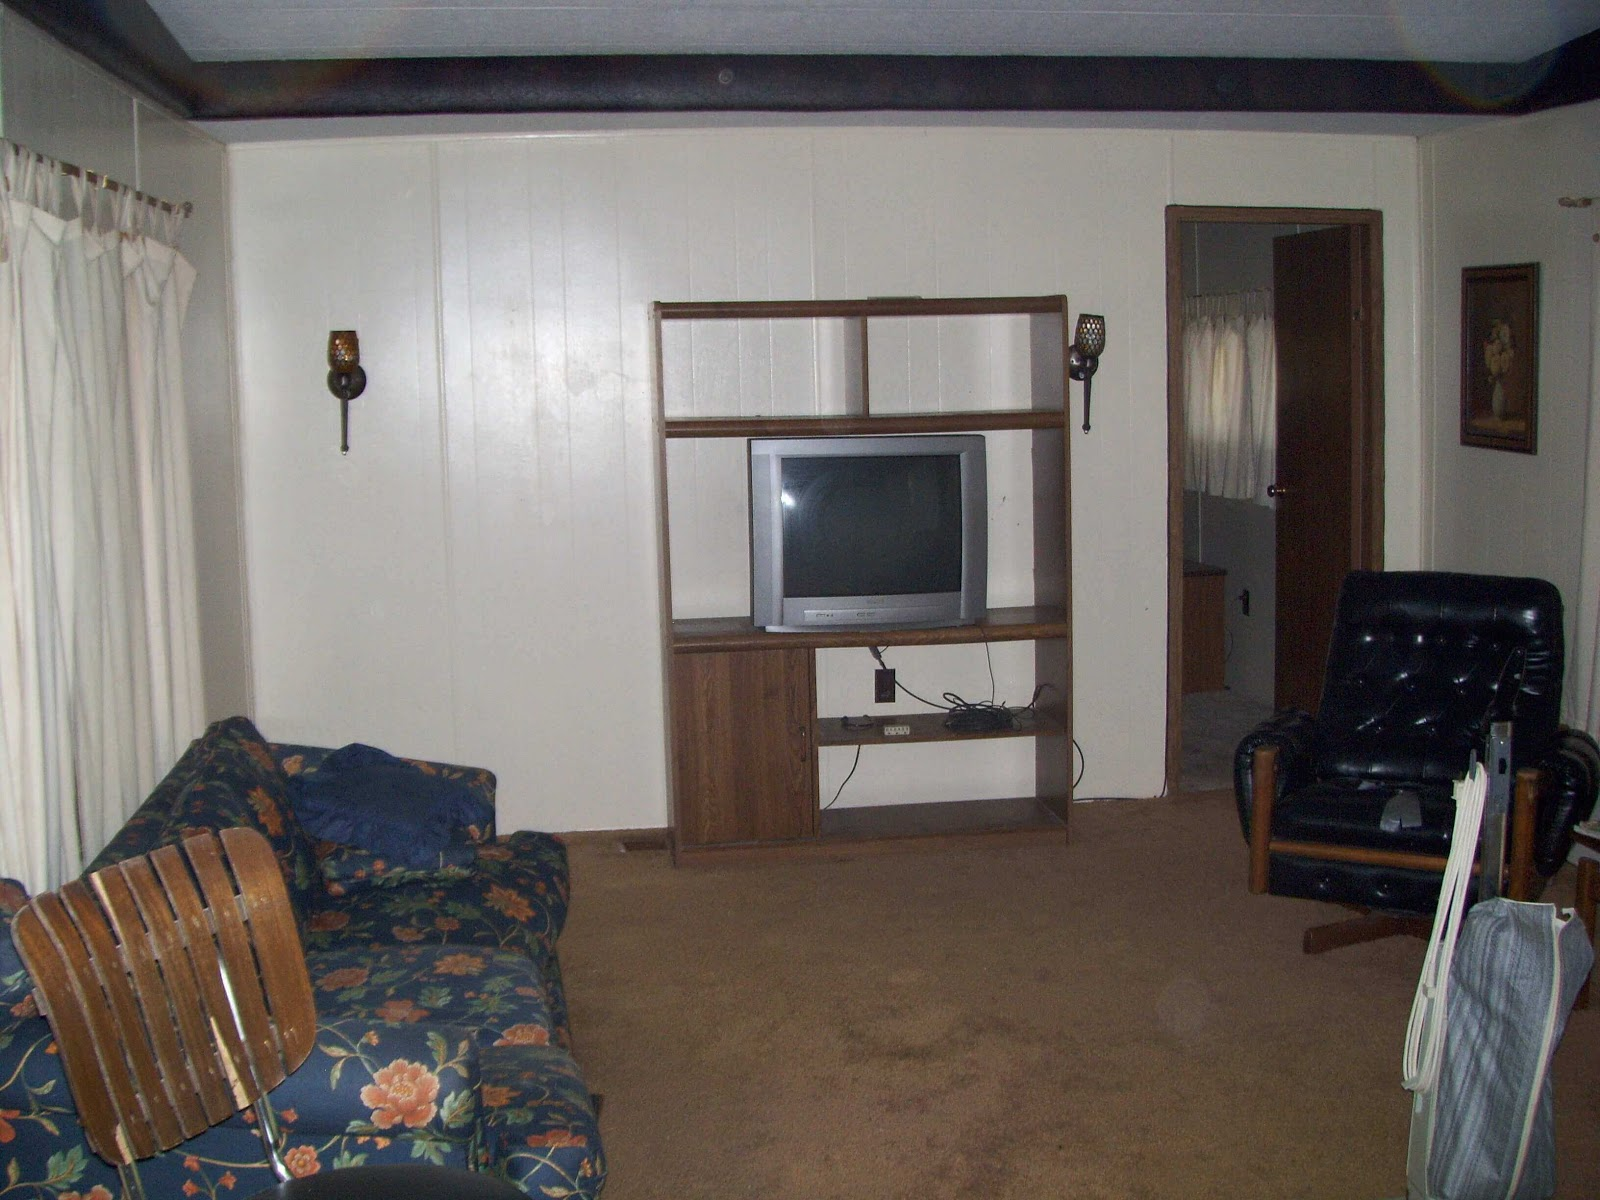 The before picture of a manufactured home, with an old television and television set and old furniturel